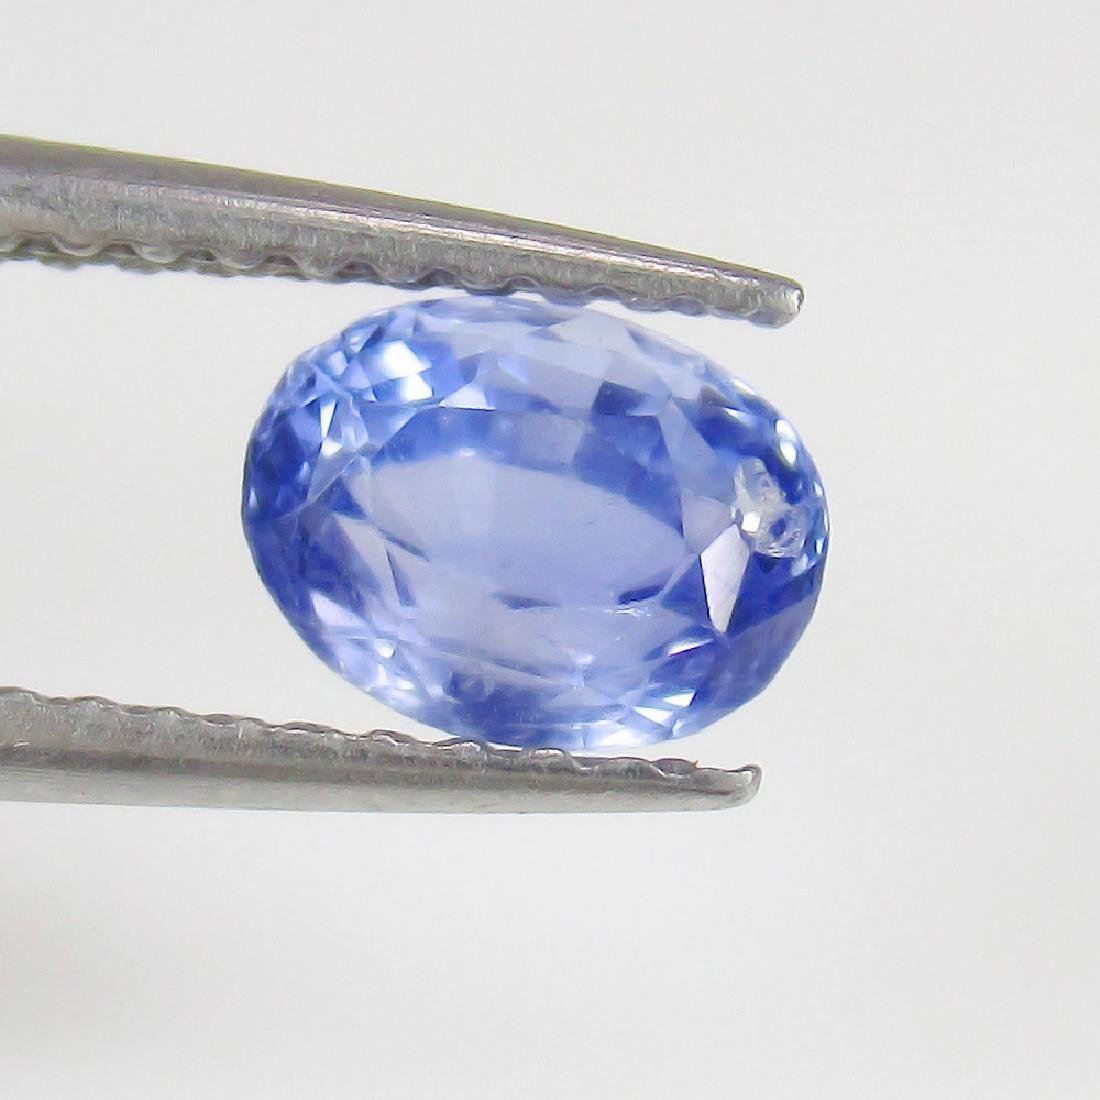 0.90 Ct Genuine Loose Ceylon Blue Sapphire Top Quality